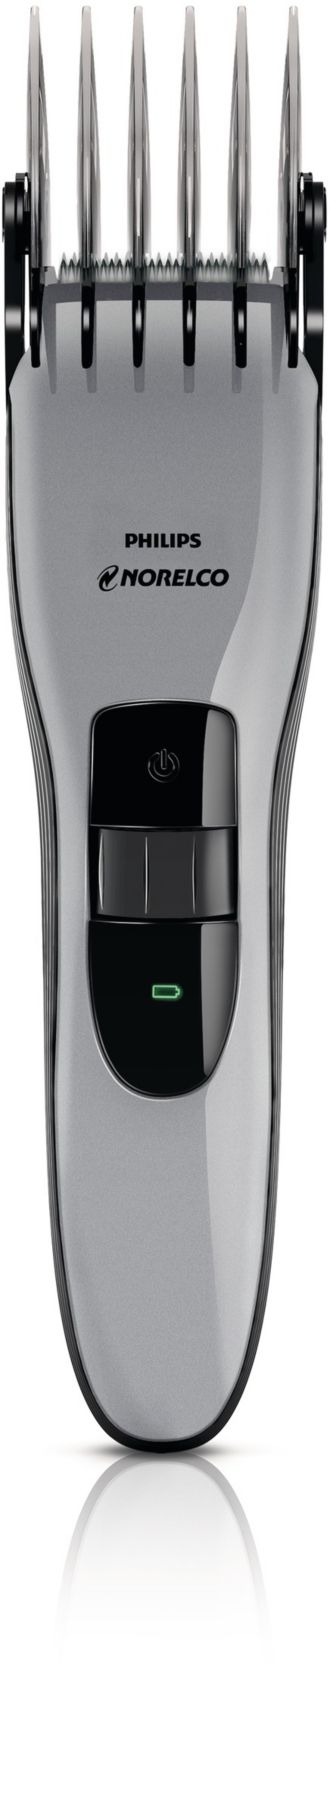 Philips  Hair clipper pro With contour following comb QC5340/40